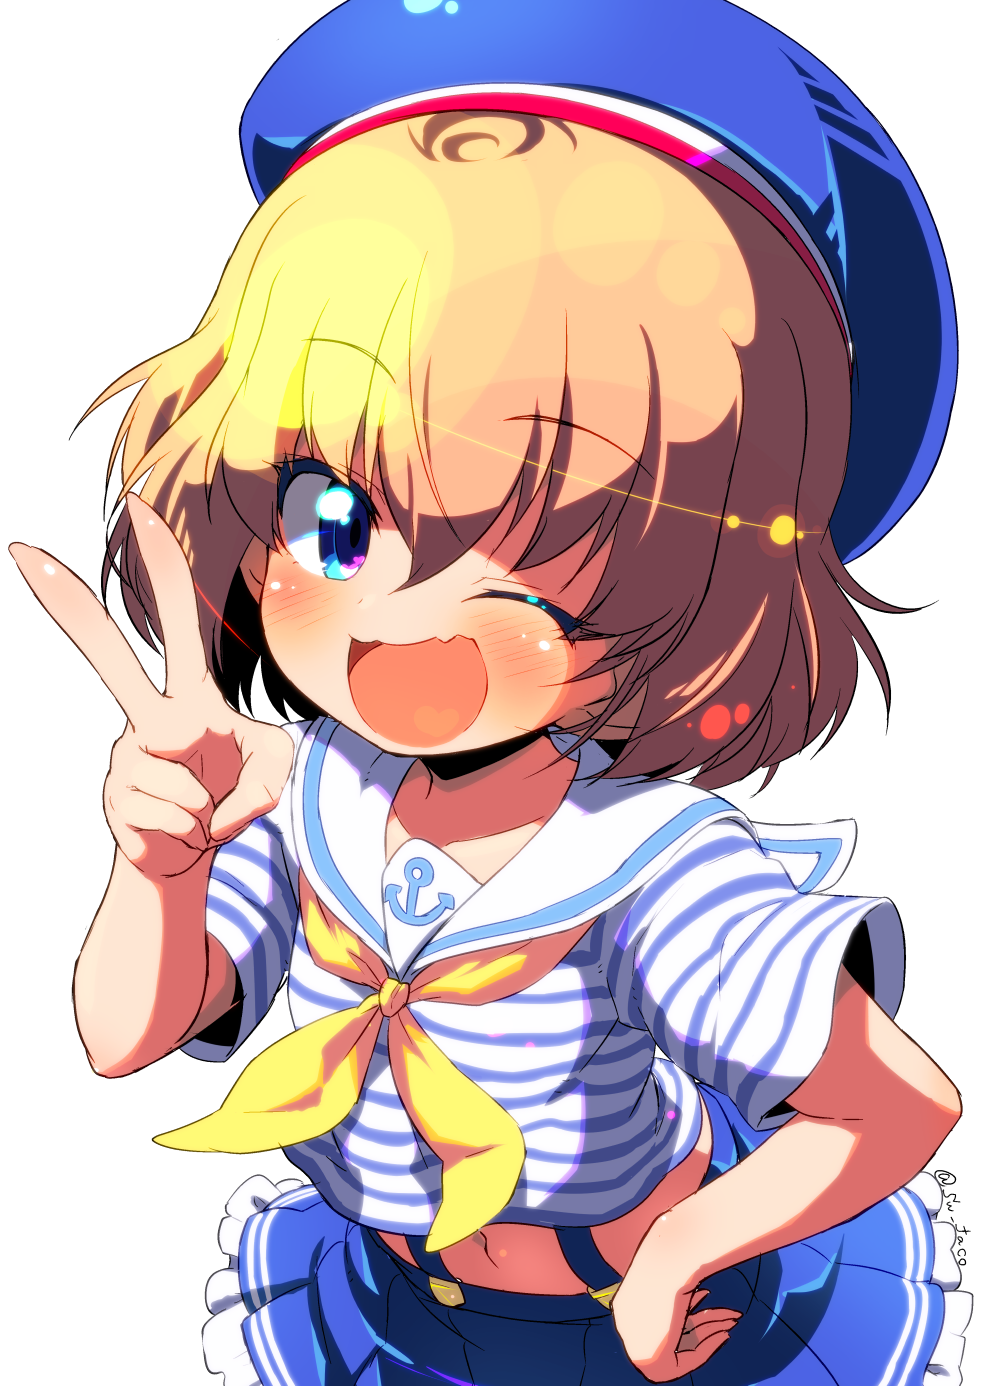 1girl ;d anchor_symbol bangs beret blonde_hair blue_eyes blue_hat blue_shirt blue_sky blush casual commentary double_horizontal_stripe eyebrows_visible_through_hair fang frilled_skirt frills girls_und_panzer hat head_tilt highres katyusha leaning_forward looking_at_viewer midriff miniskirt navel neckerchief one_eye_closed open_mouth pleated_skirt print_skirt sailor_collar shirt short_hair short_sleeves skirt sky smile solo standing striped striped_shirt suspender_skirt suspenders sw twitter_username upper_body yellow_neckwear